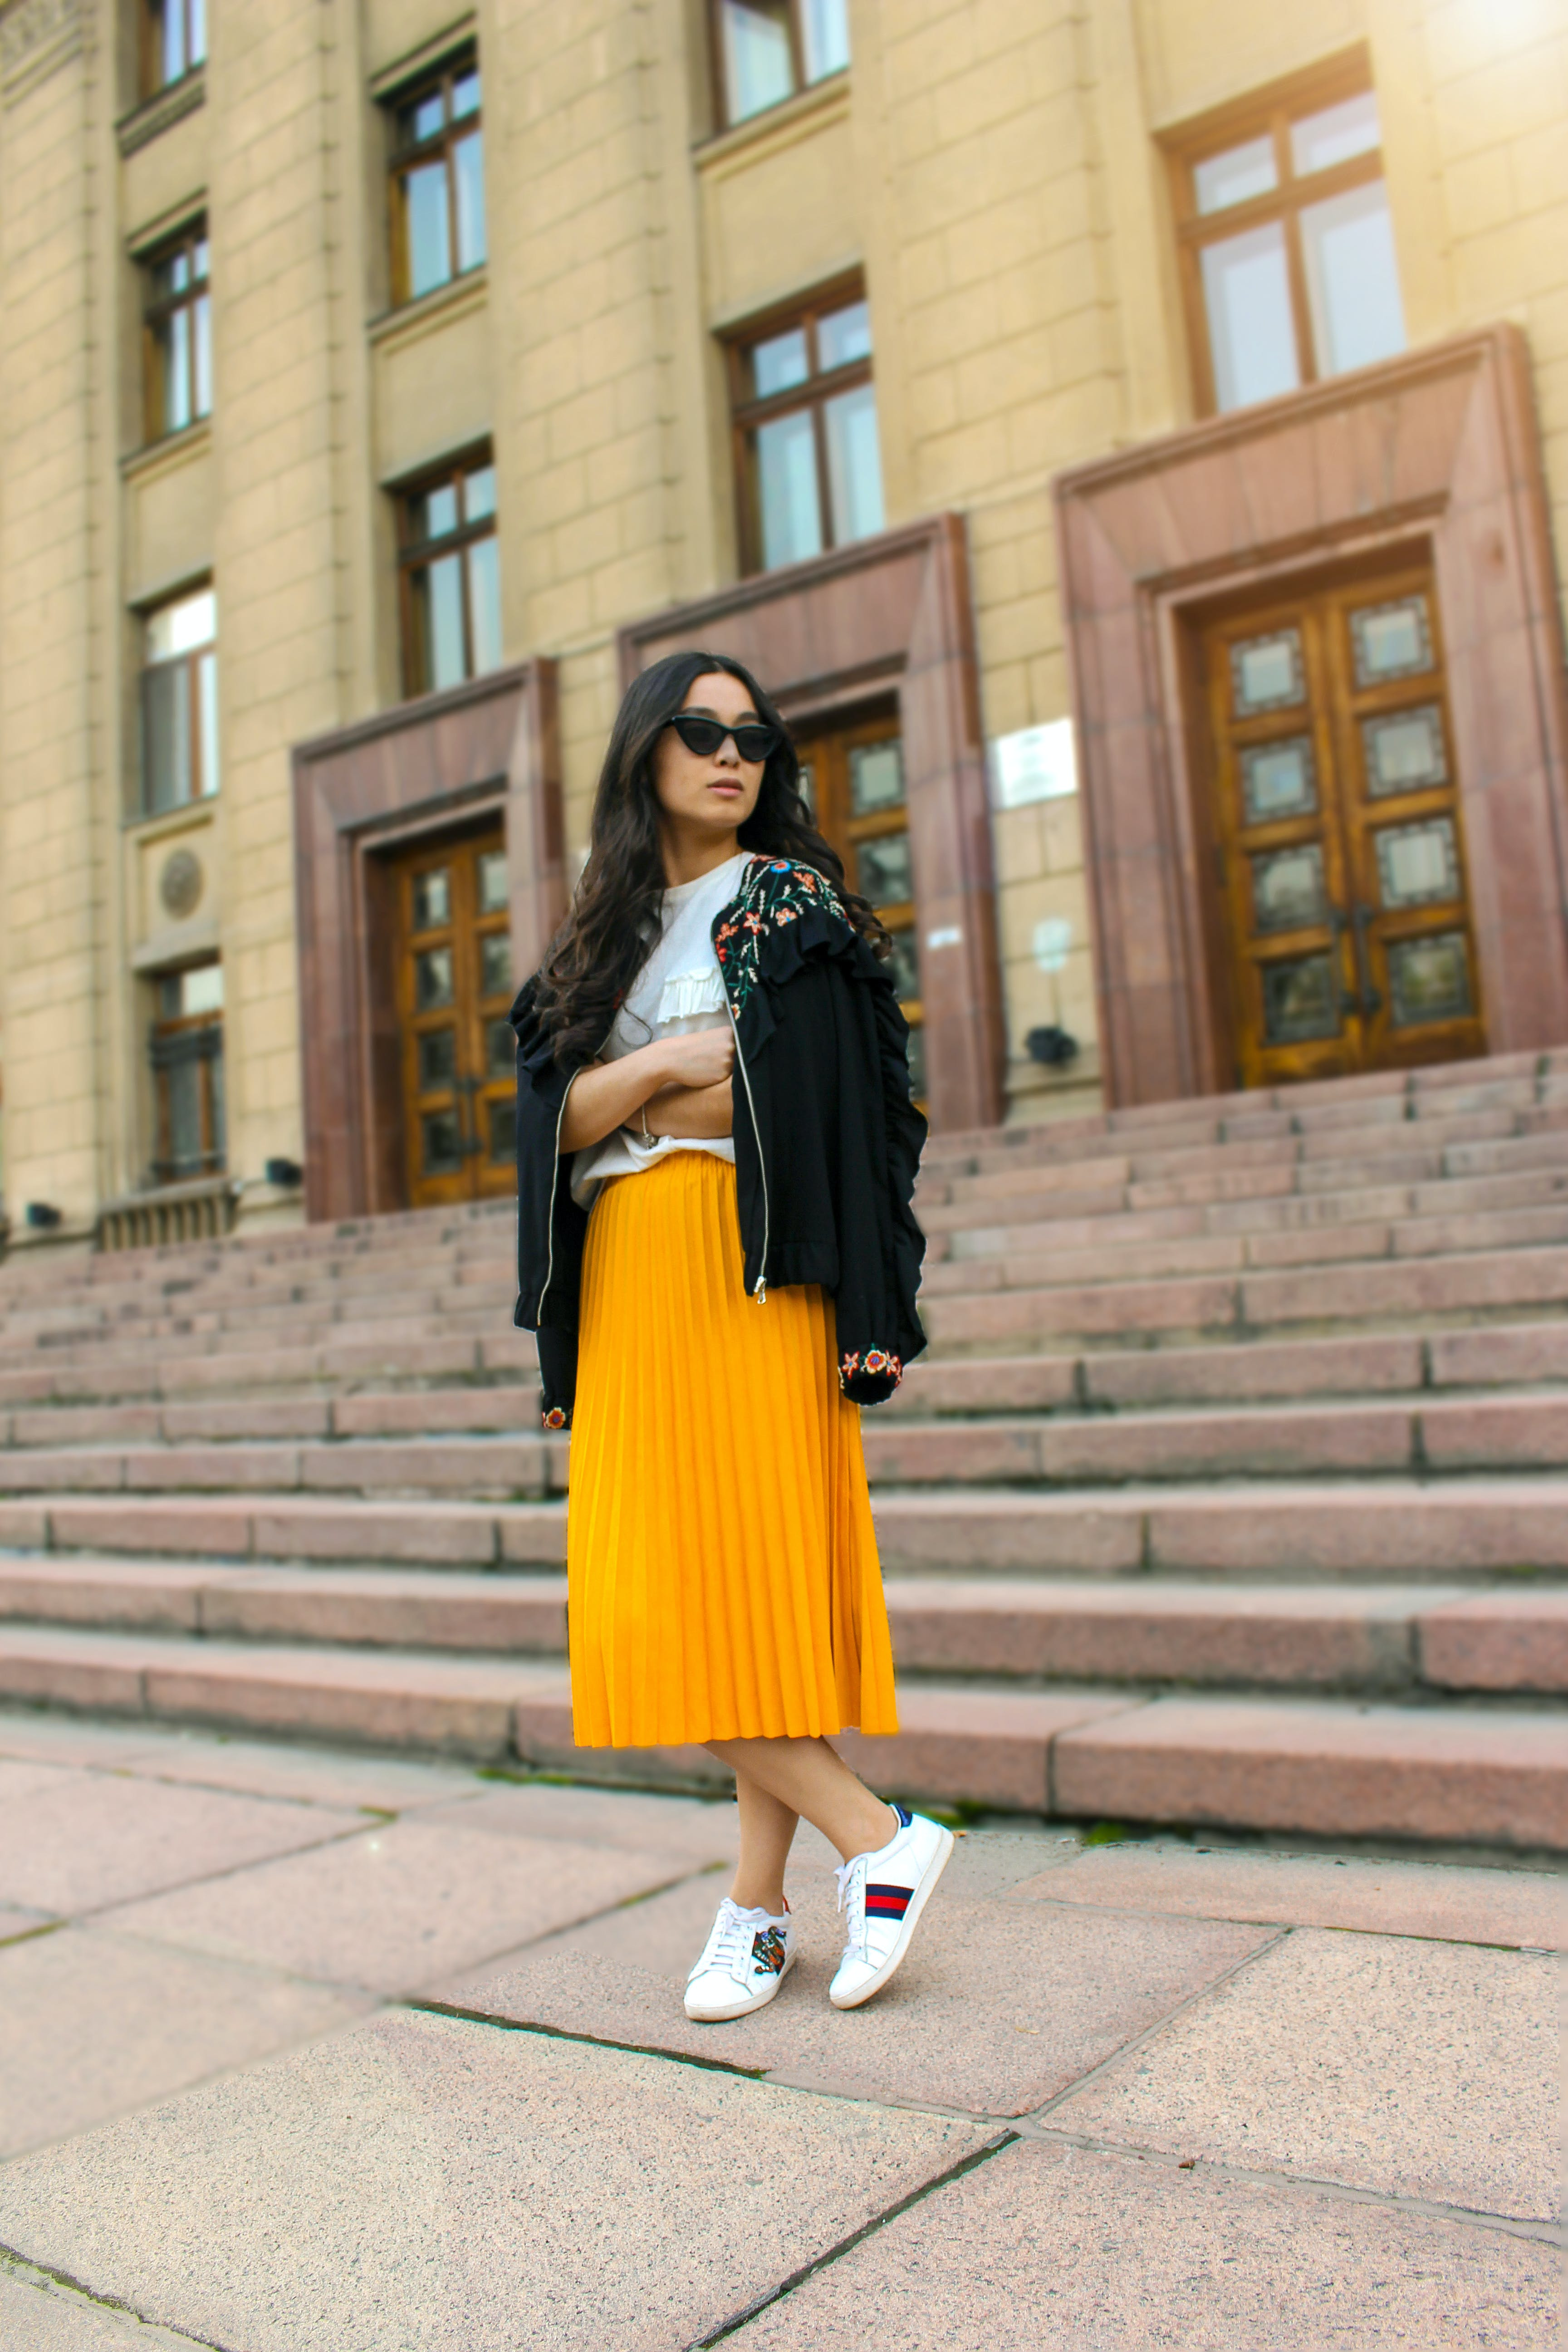 Women Wearing Black Jacket and Pleated Yellow Skirt Standing on Brown Floor